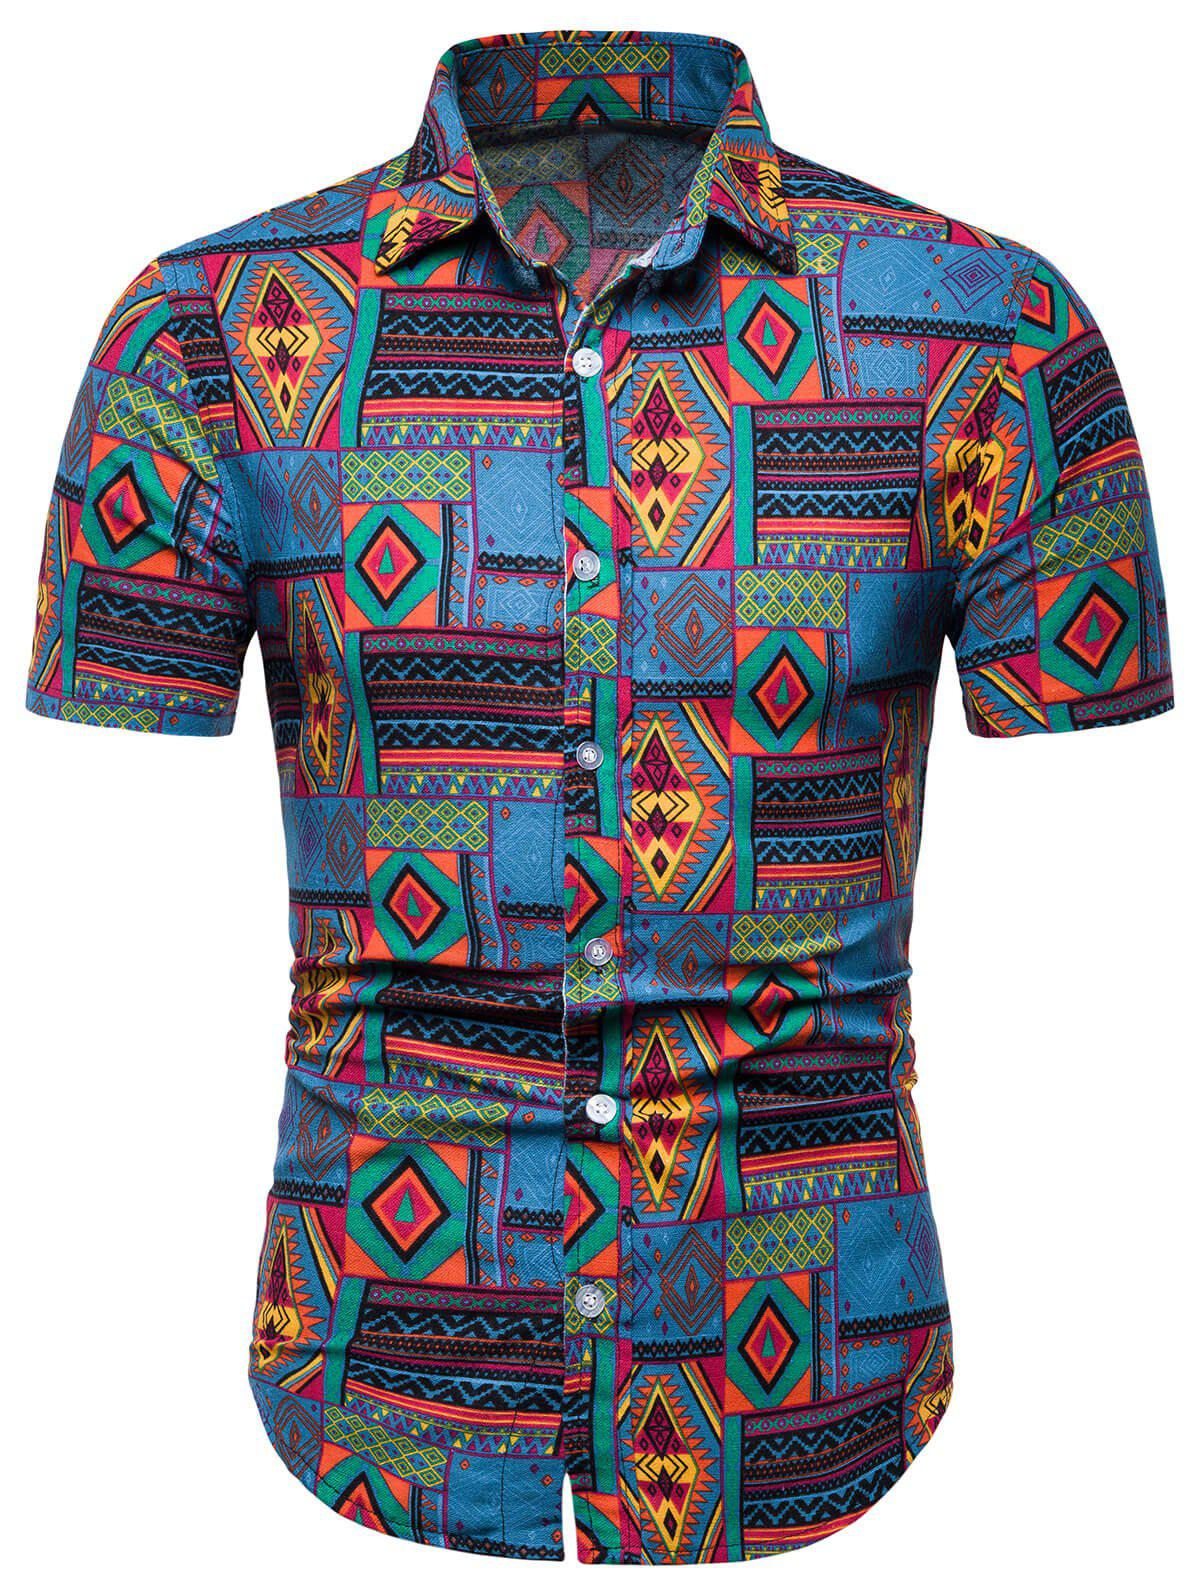 Ethnic Tribal Geometric Print Casual Shirt - BLUE XL